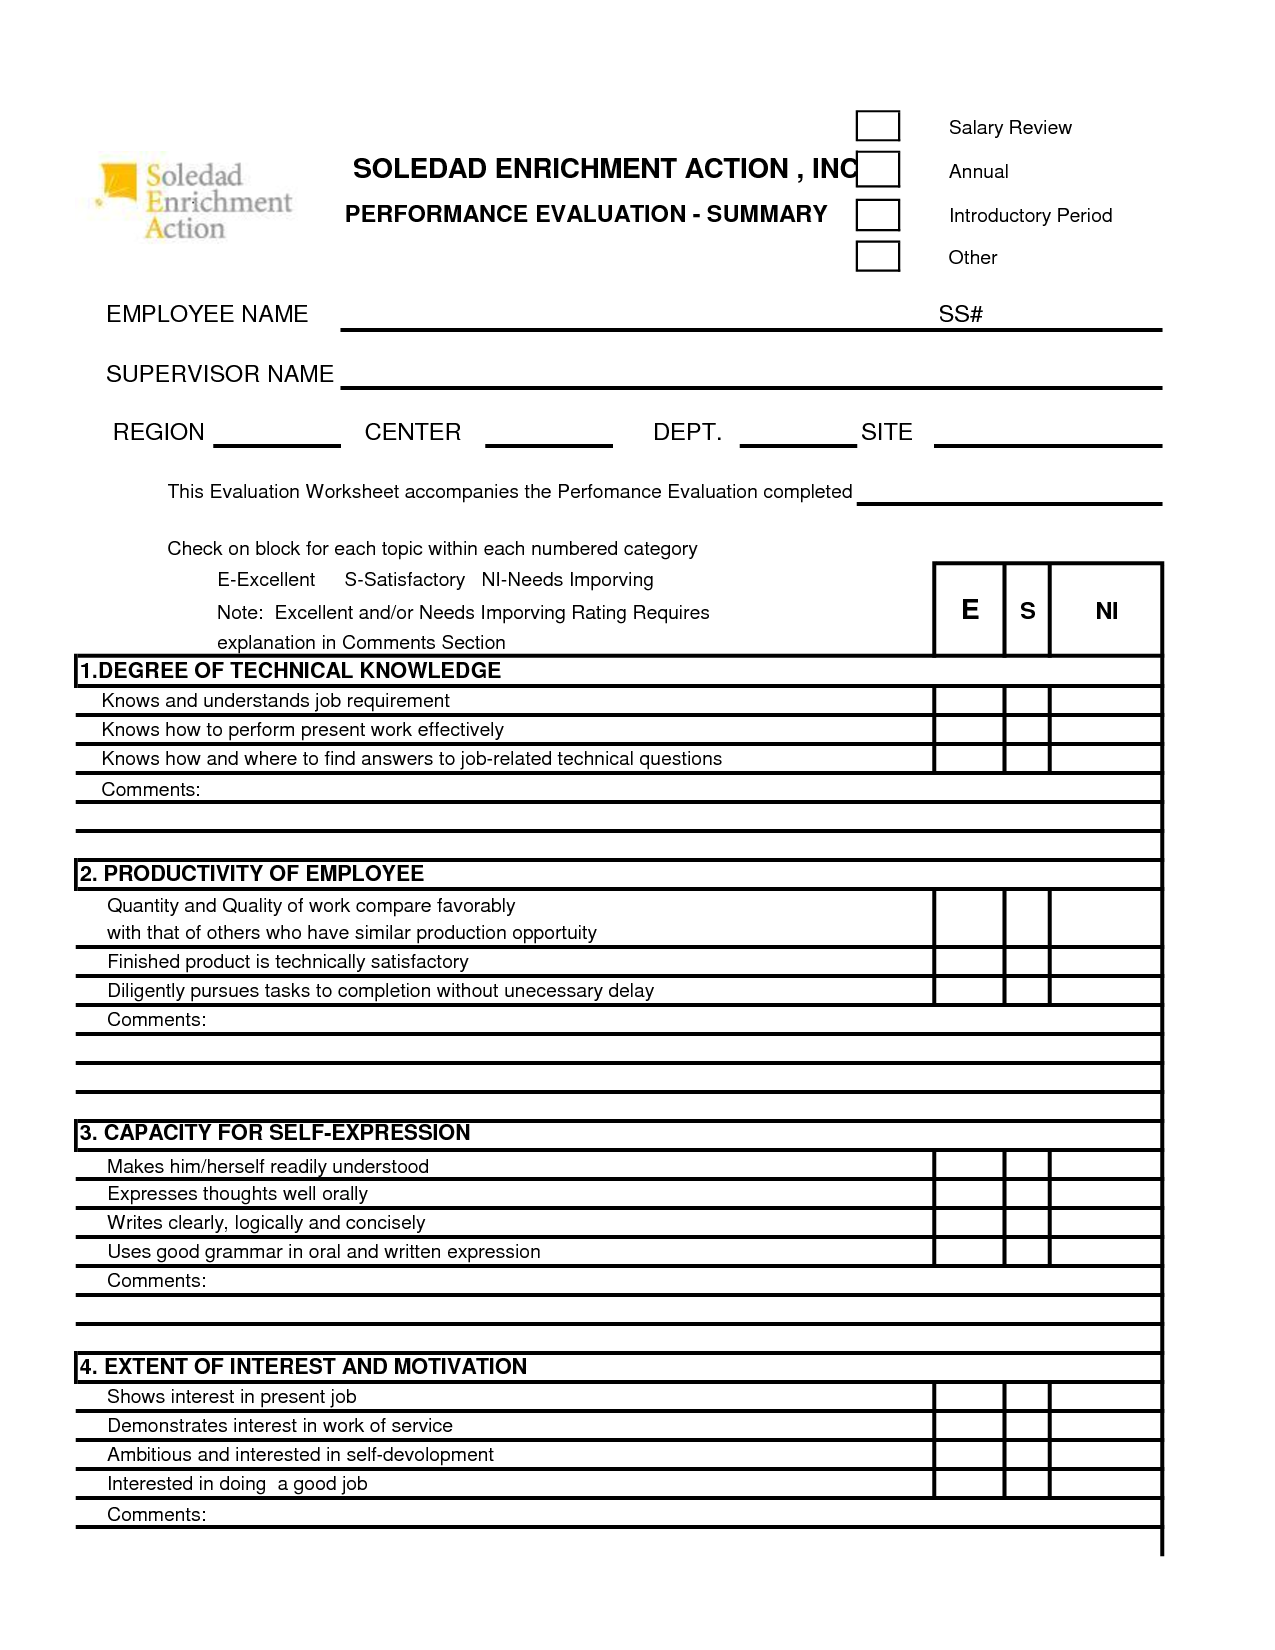 free 360 performance appraisal form Google Search – Self Performance Evaluation